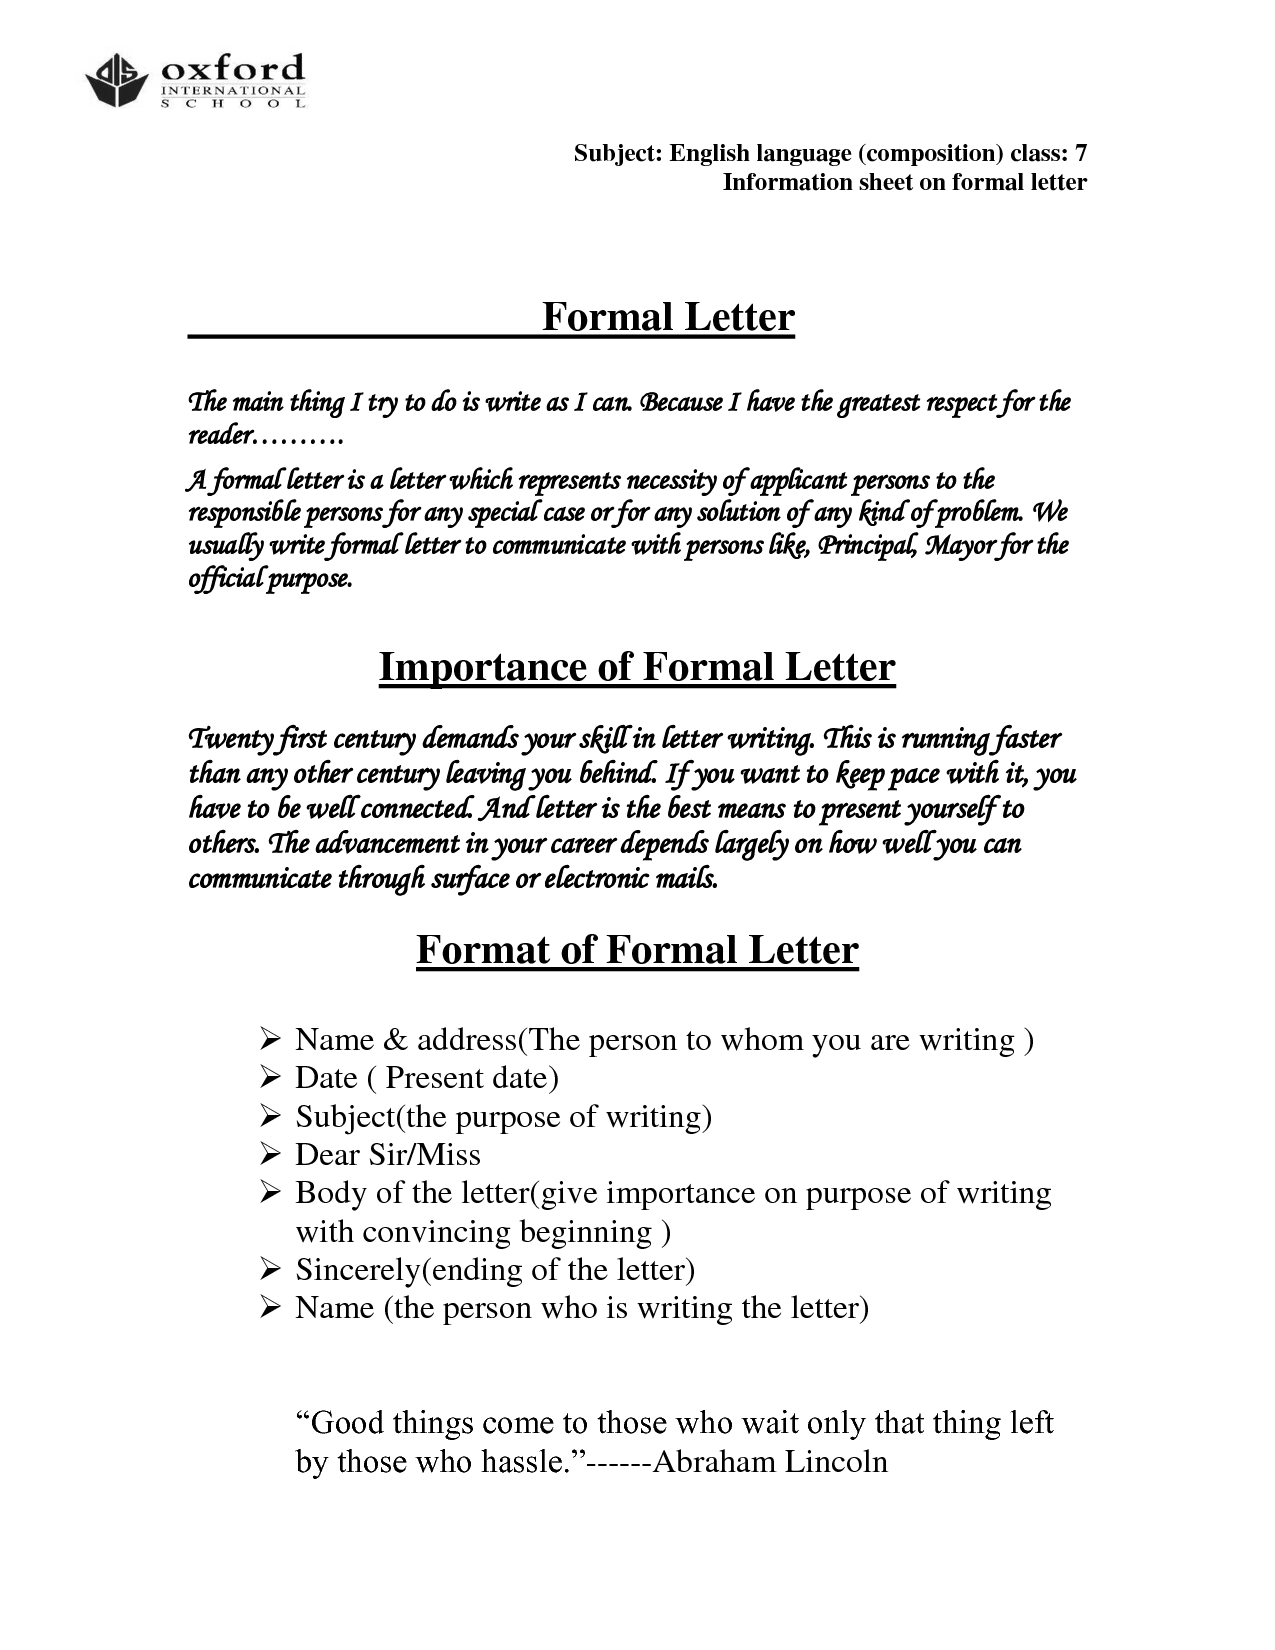 Official letter format templateofficial letter business letter resume writers best templatewriting cover letter examples official format templateofficial business sample best free home design idea inspiration expocarfo